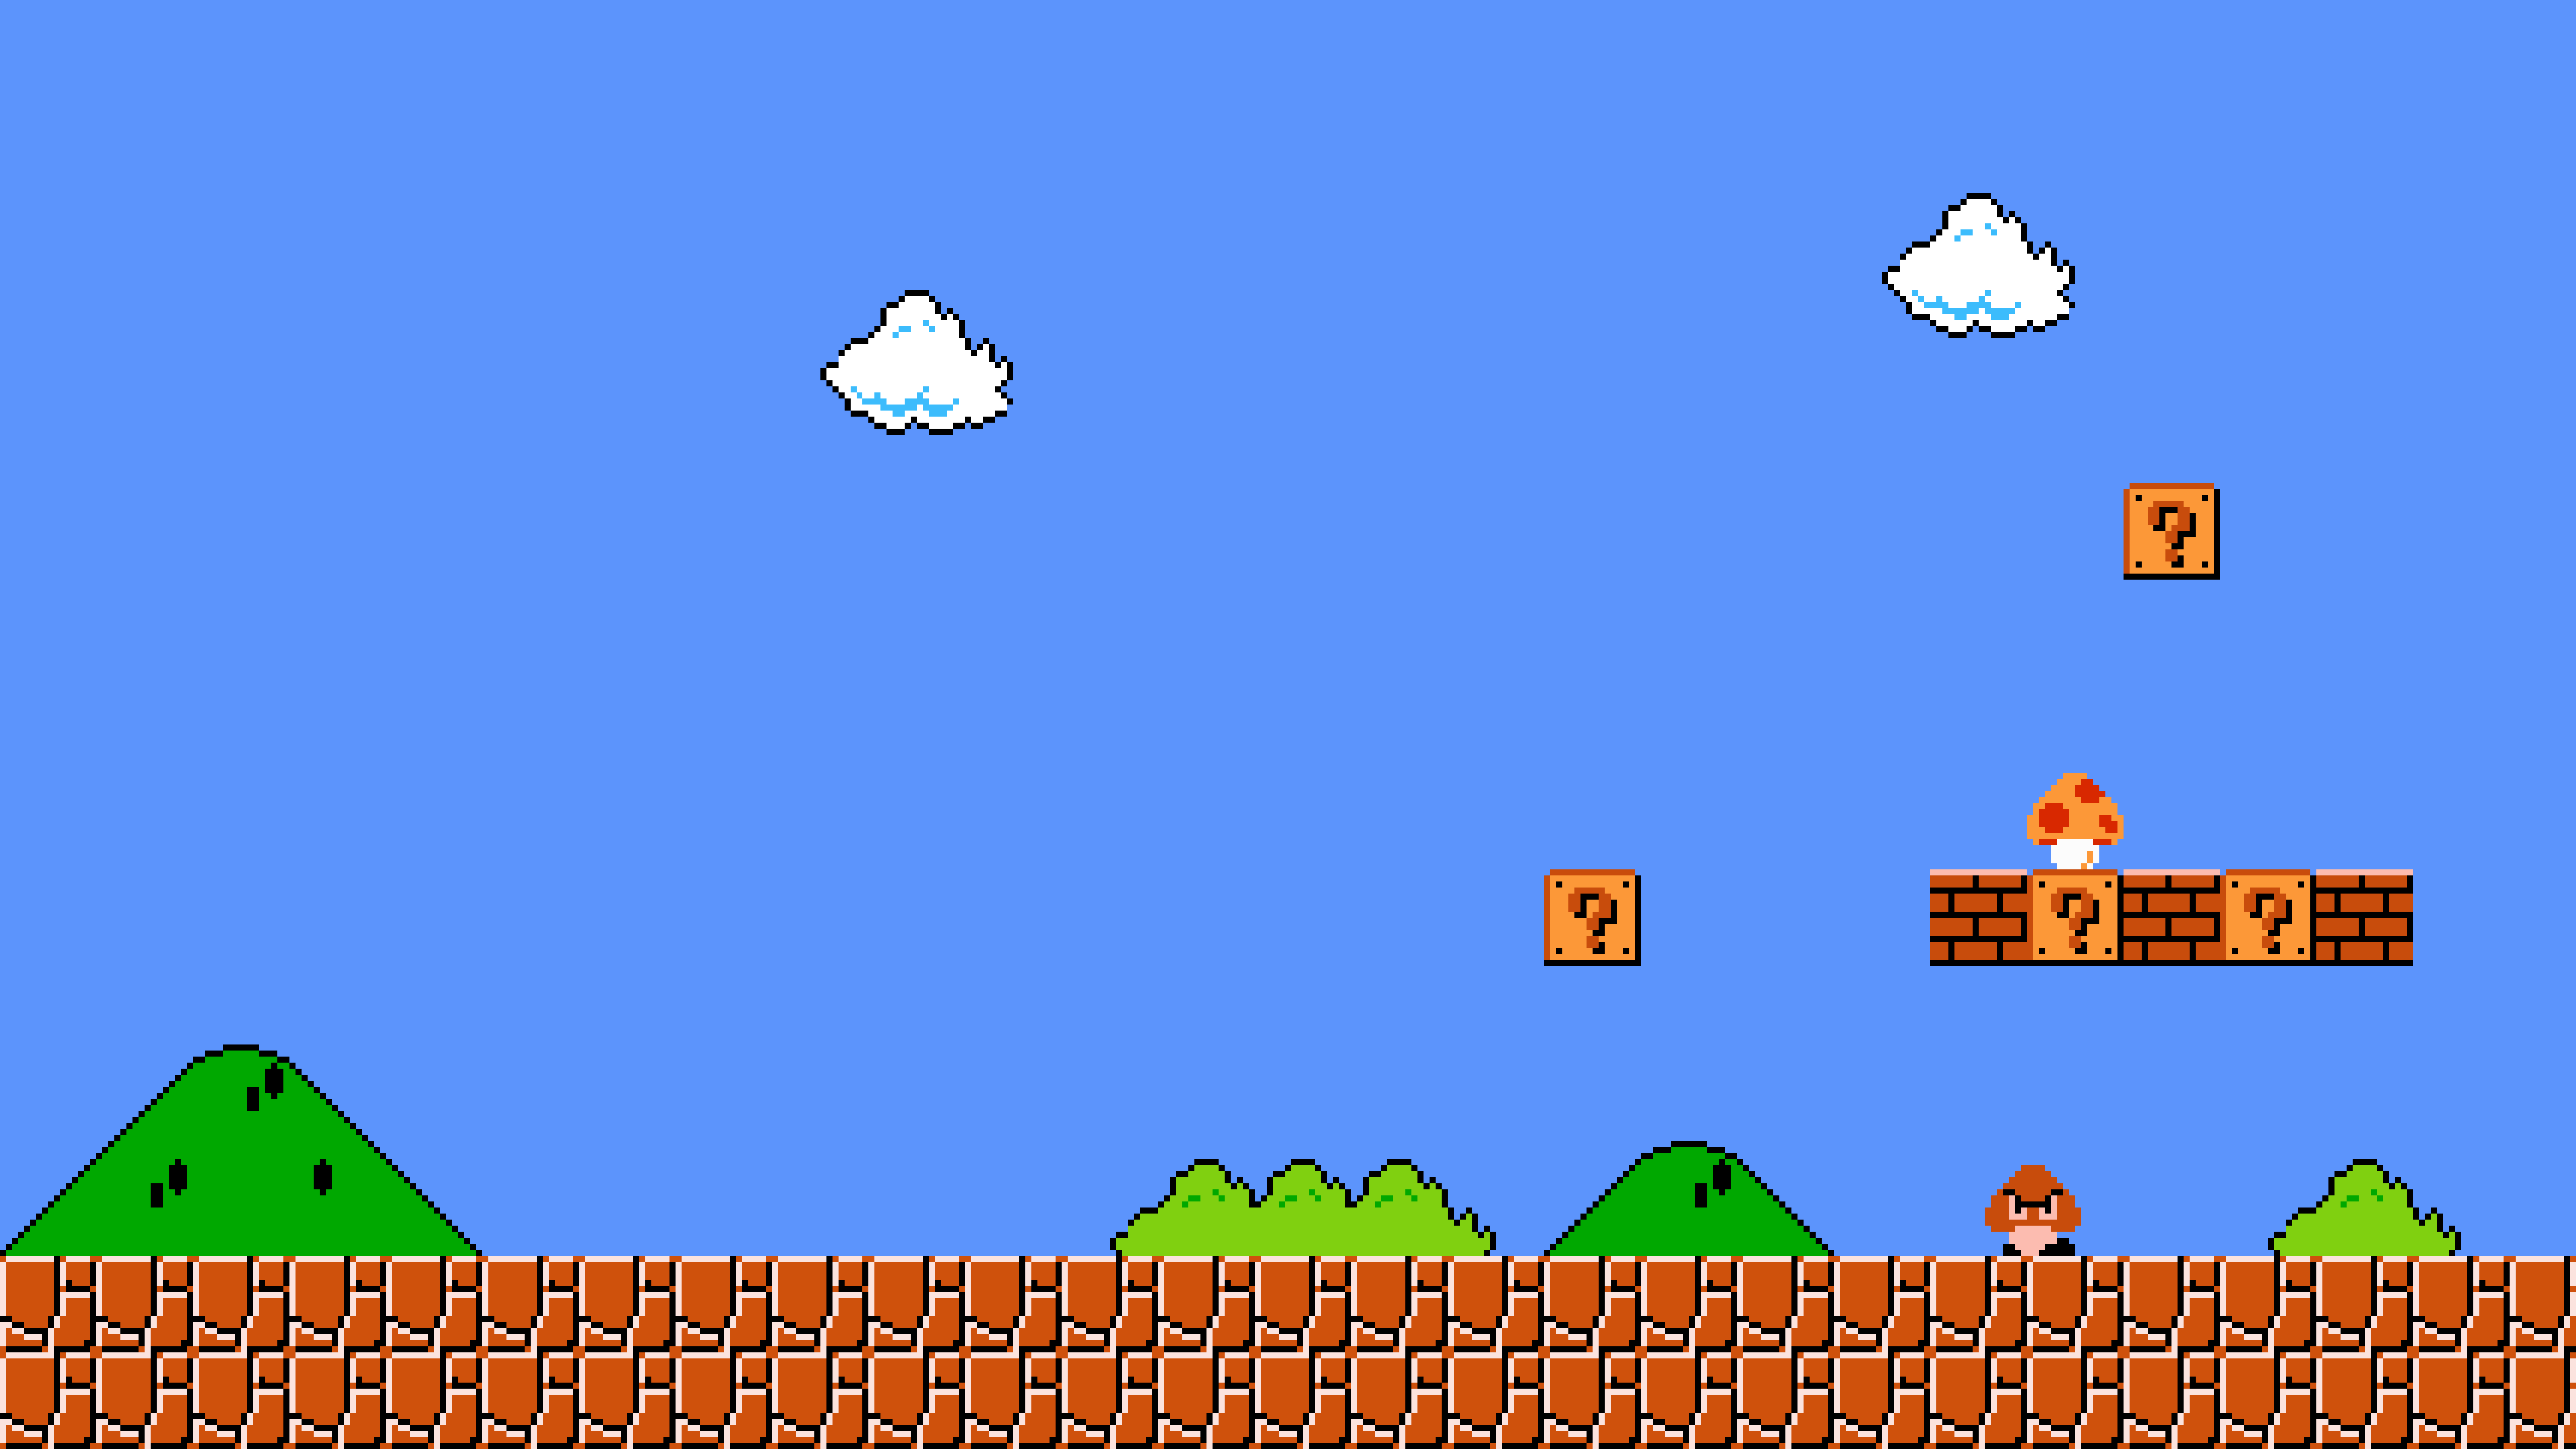 Home supermario games supermario wallpapers - Super Mario Wallpapers Wallpaper